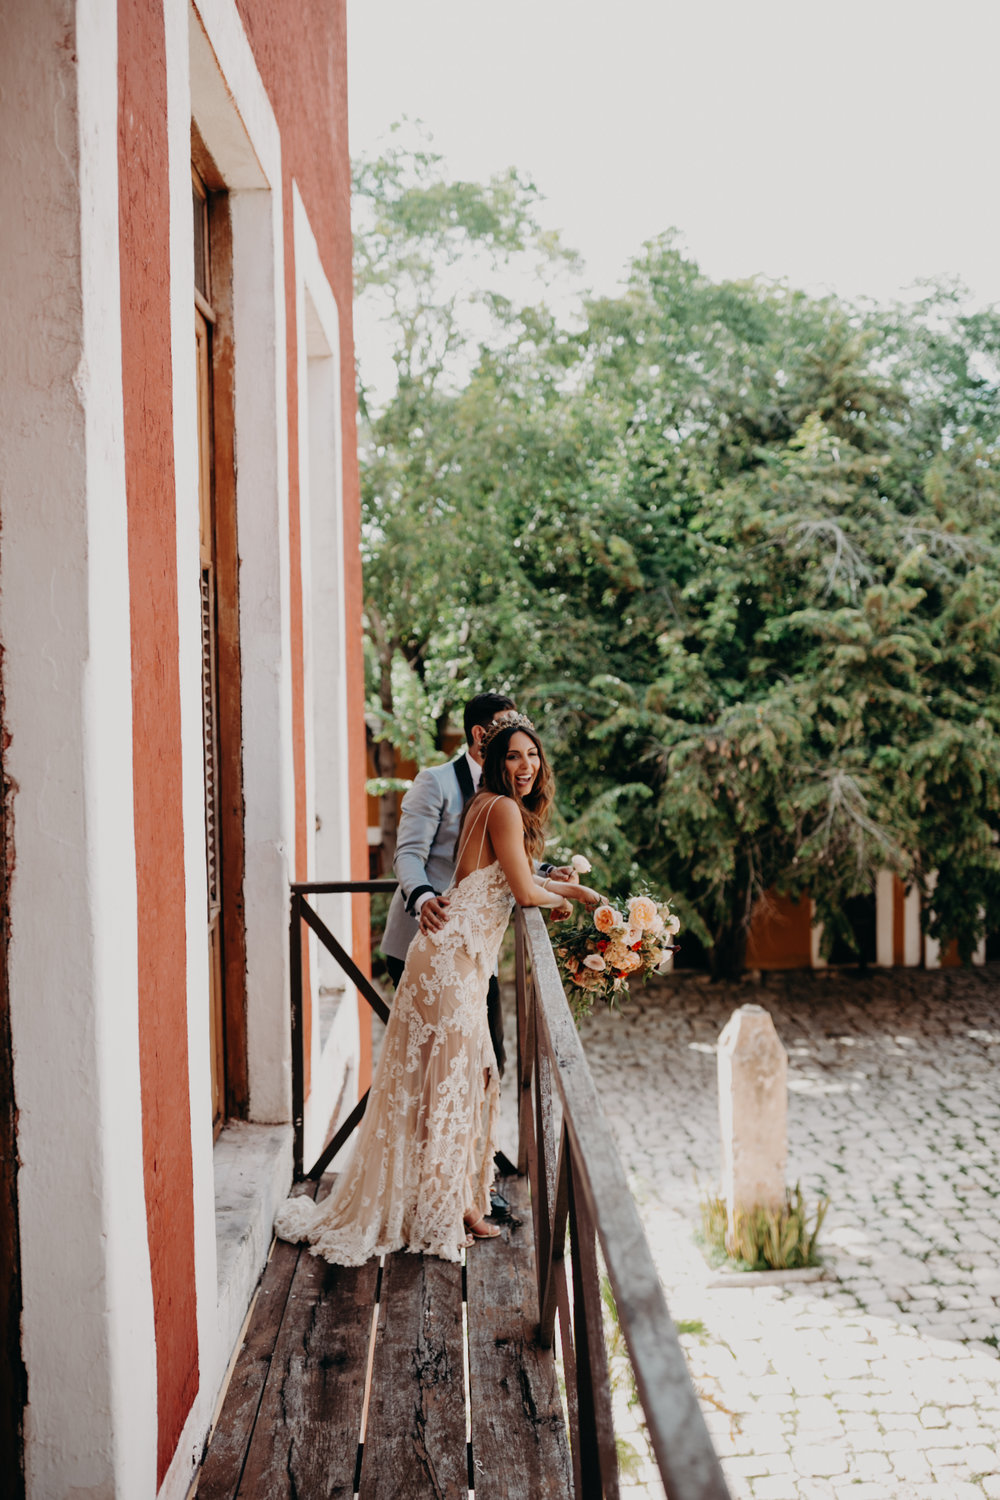 Hacienda Temozon Yucatan Mexico Wedding | Ida & Peter Emily Magers Photography-638.jpg